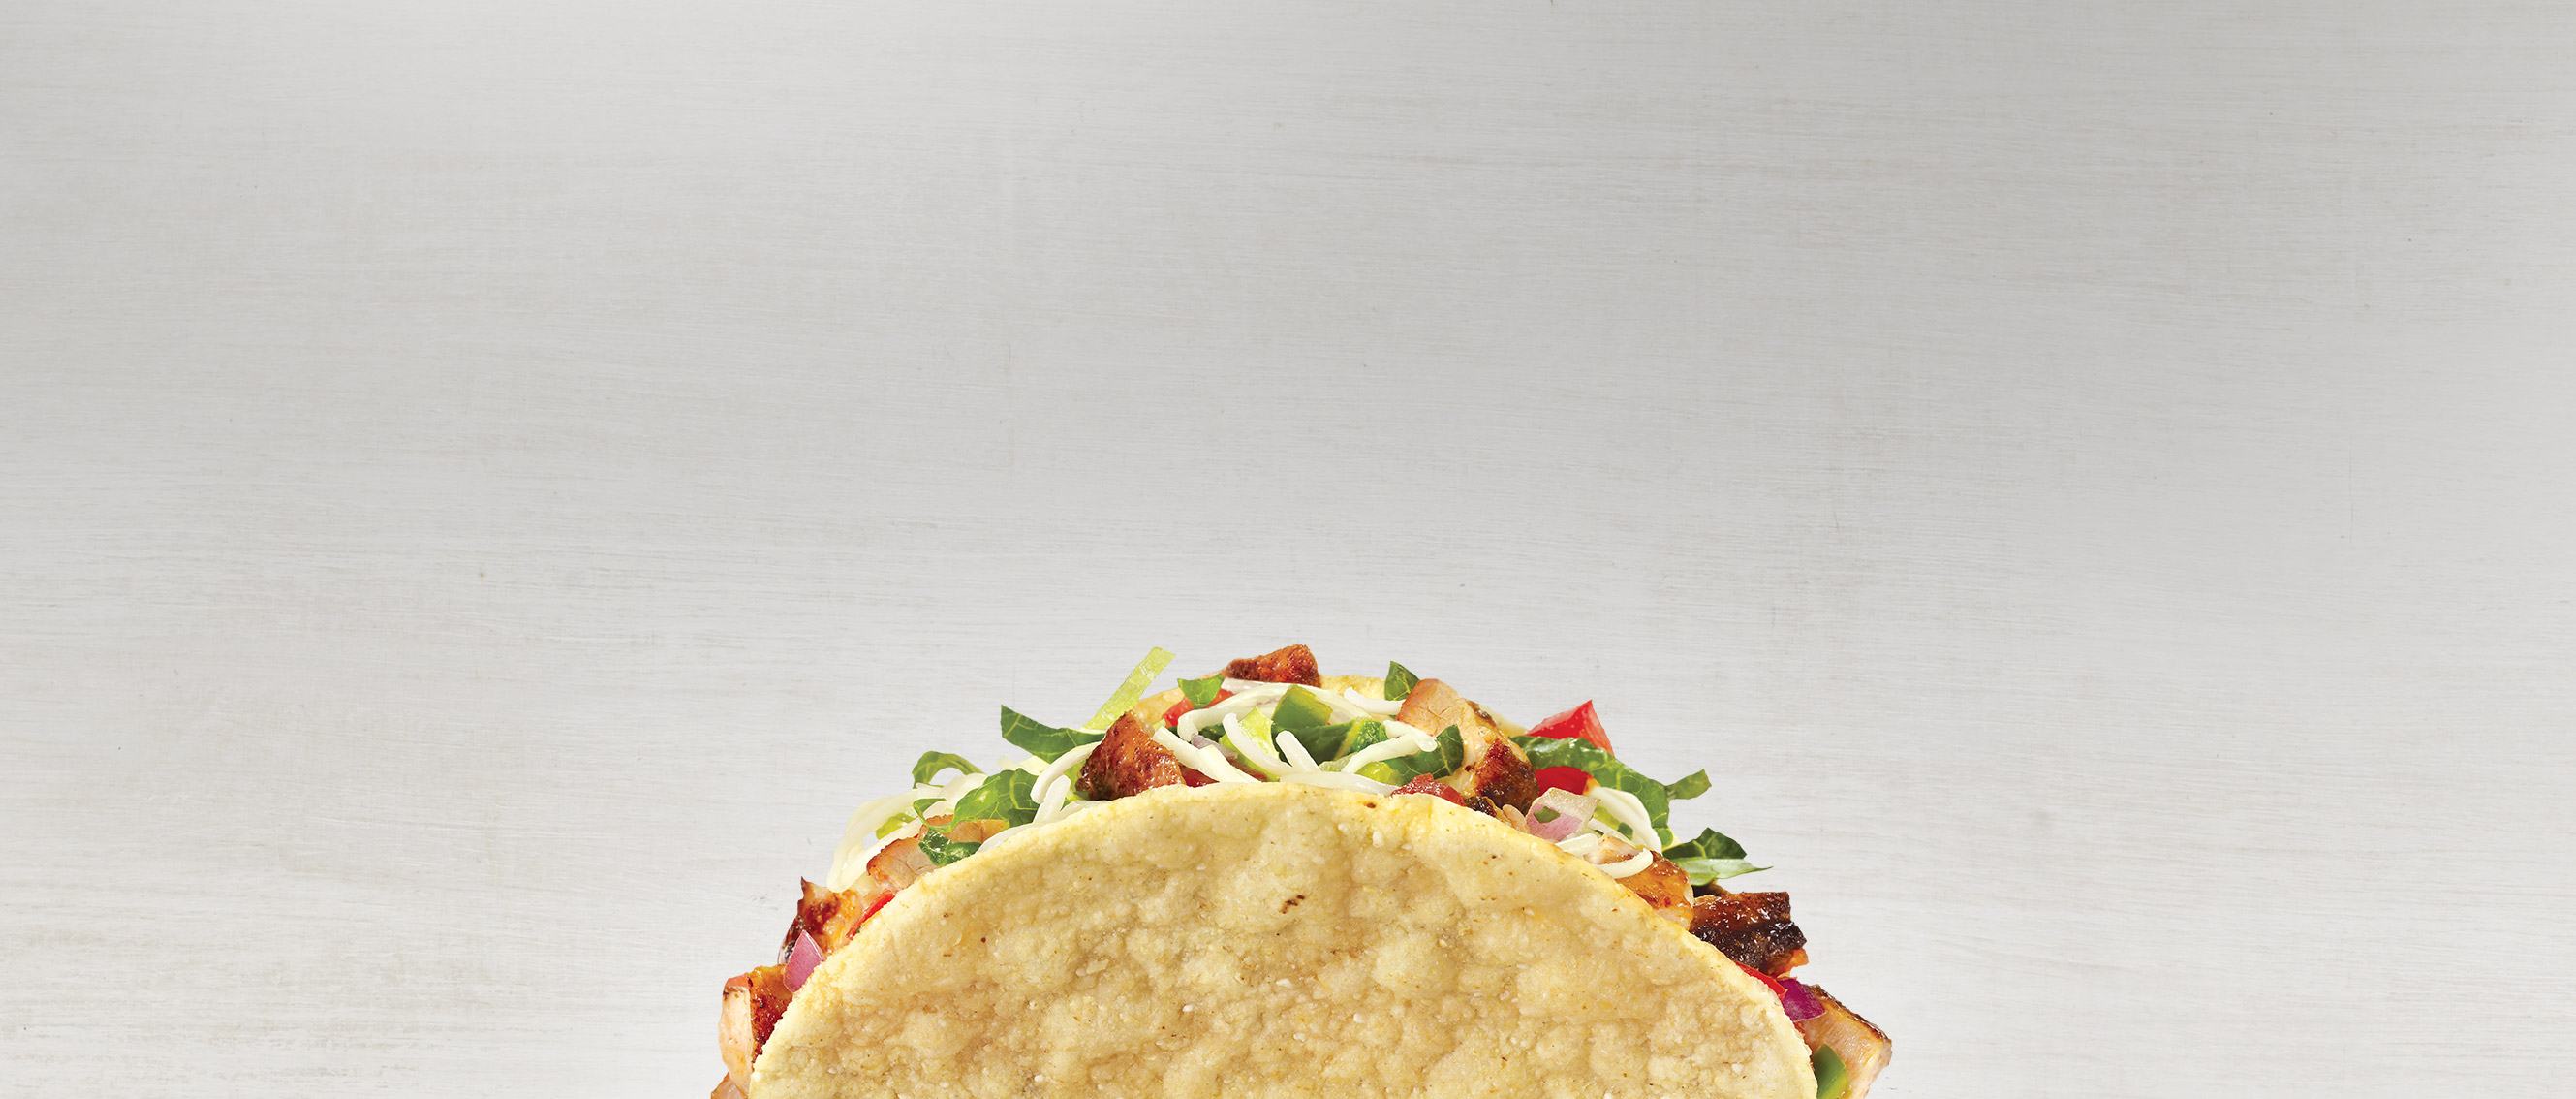 An image of a single crispy-shell chipotle taco.